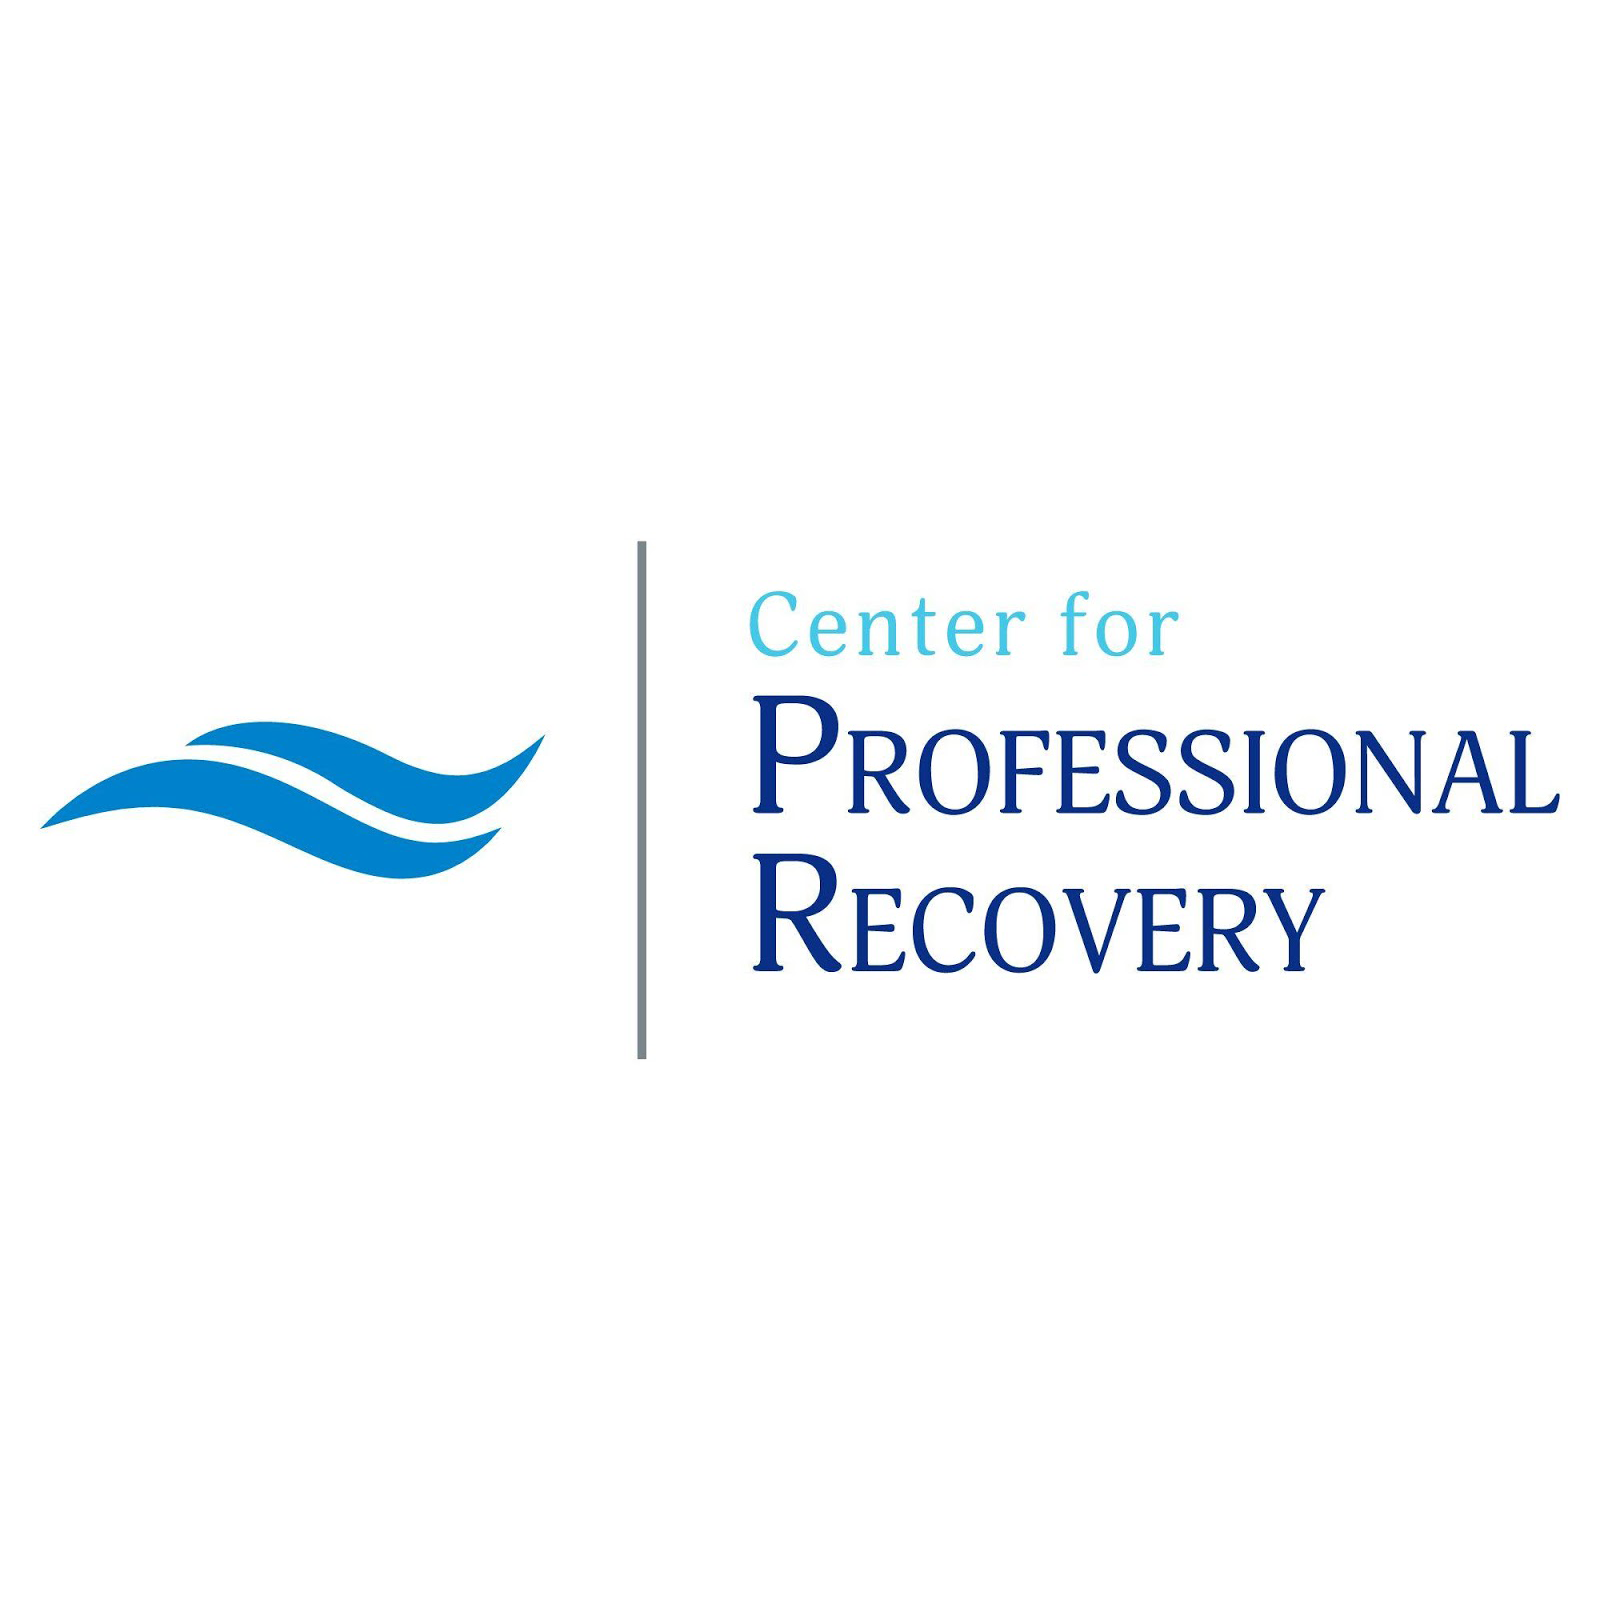 Center for Professional Recovery